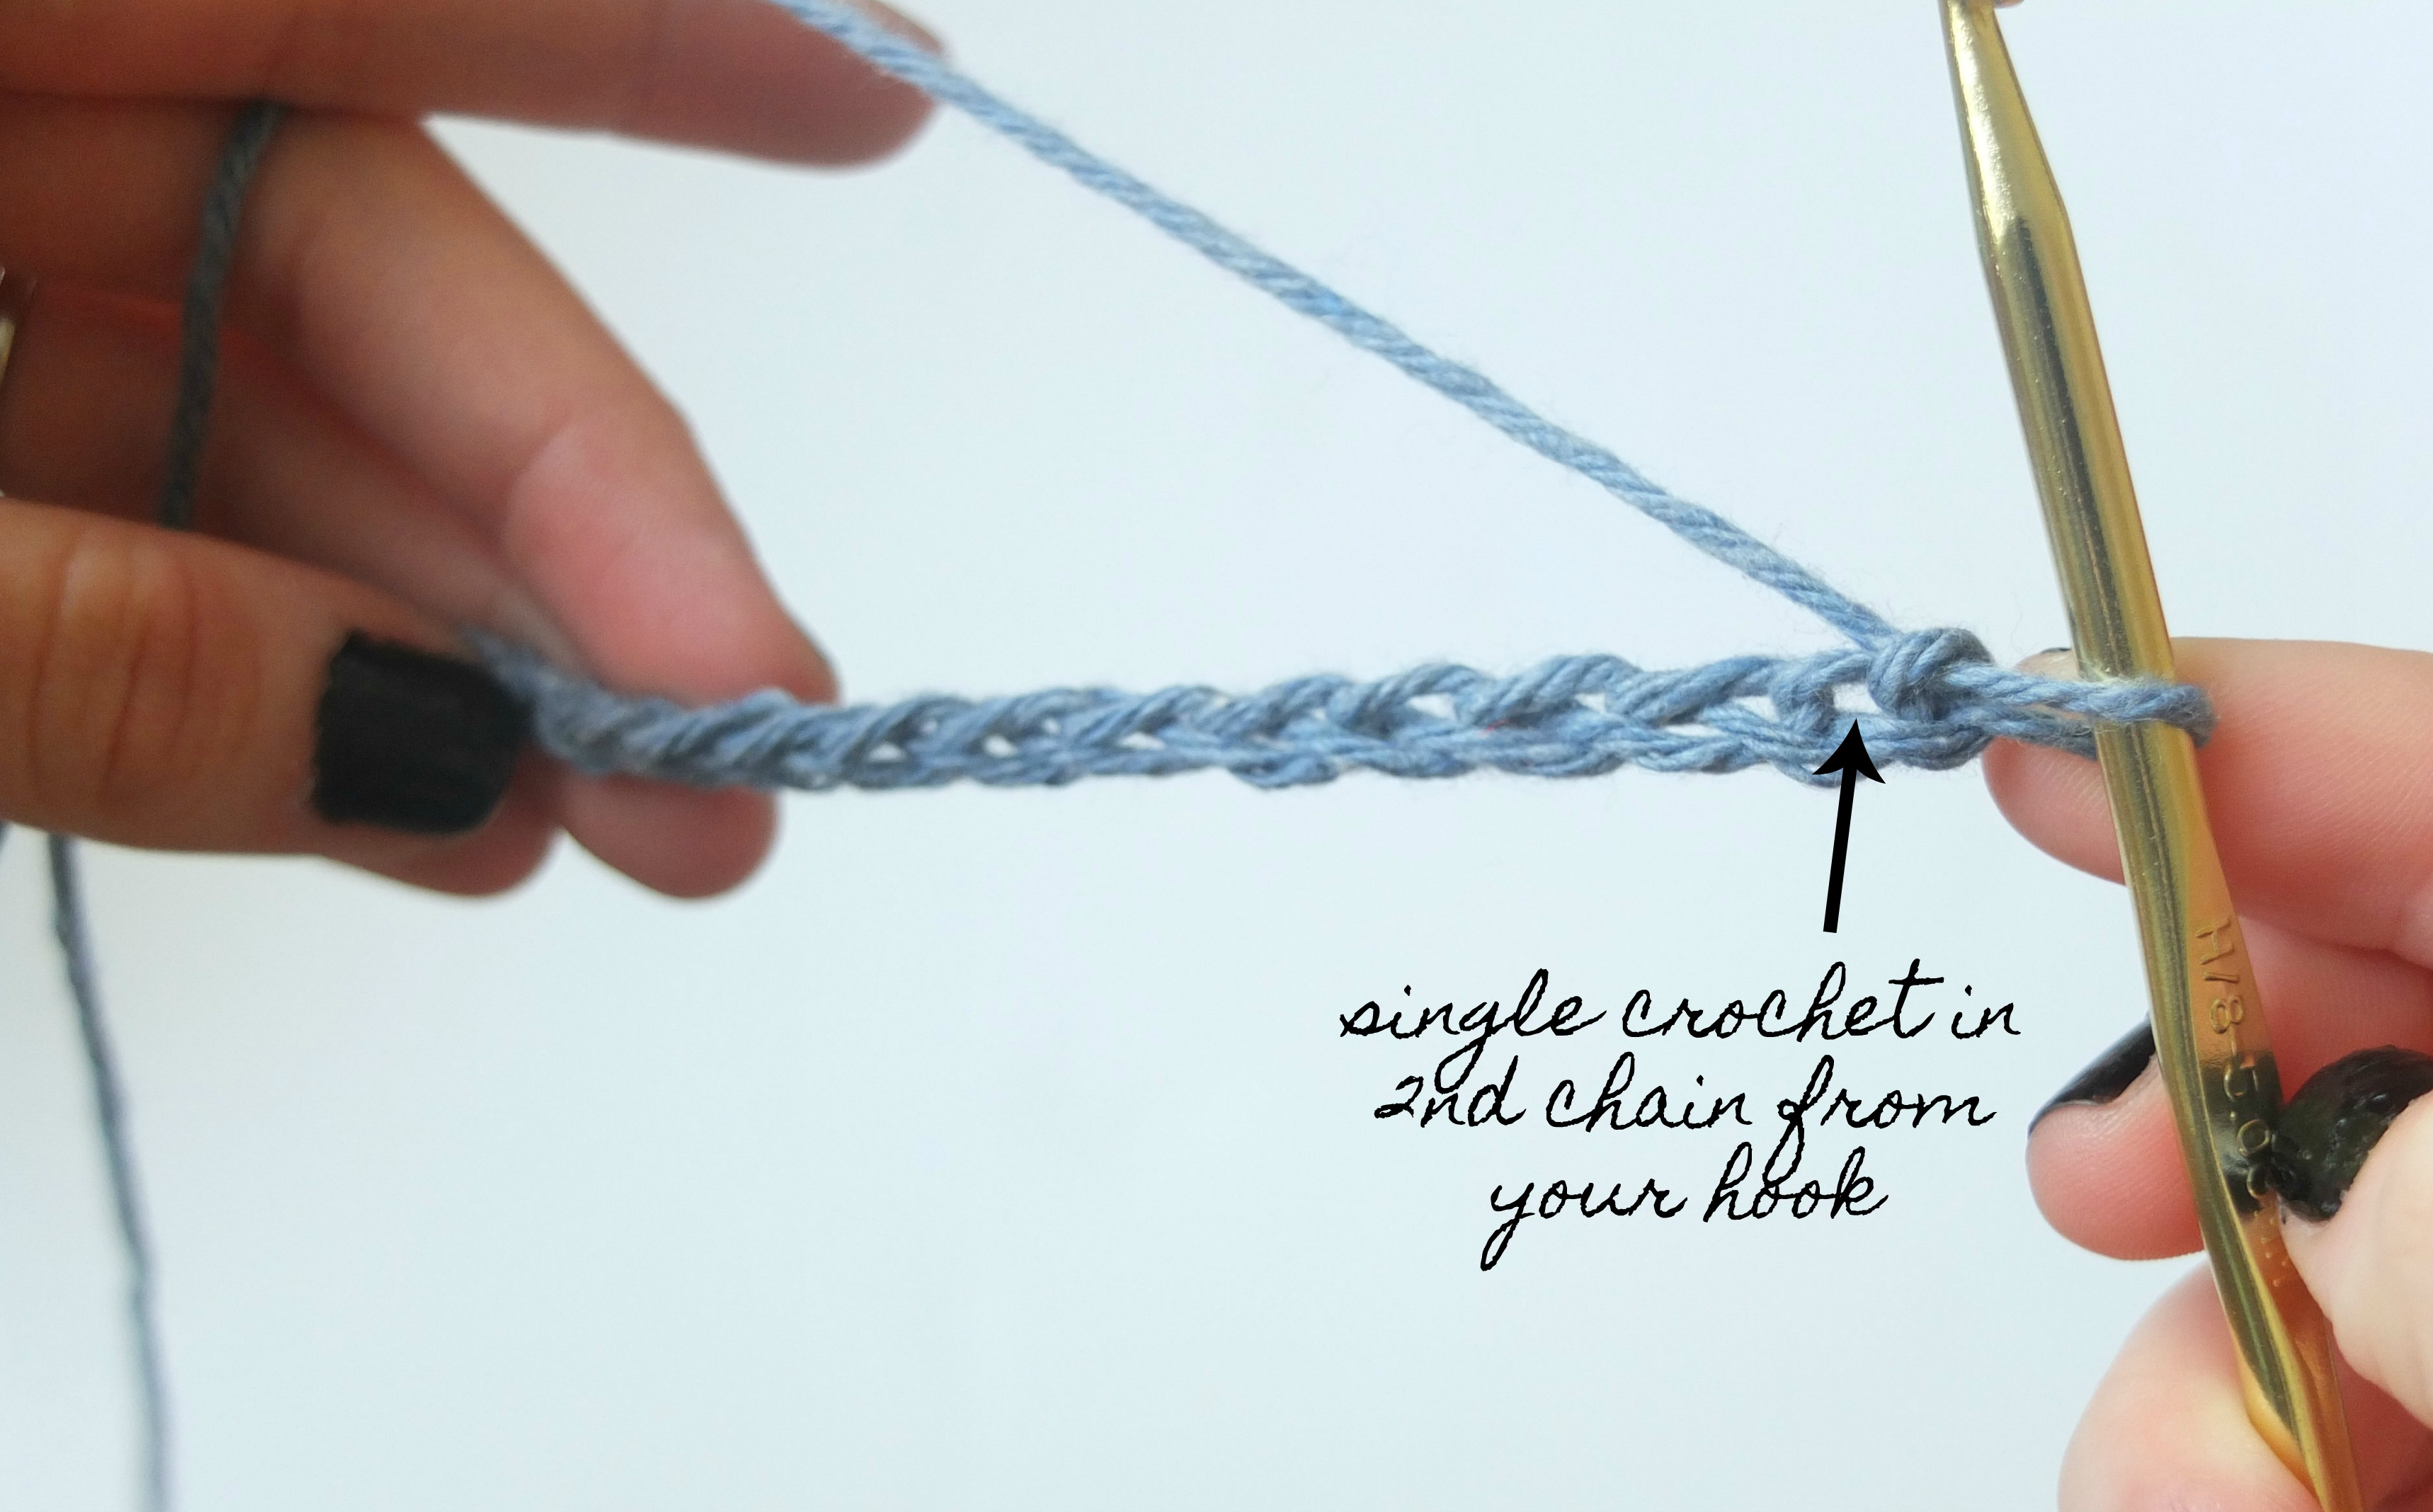 Sigoni is showing how to insert your hook into the second chain from your hook when working the single crochet stitch for beginners